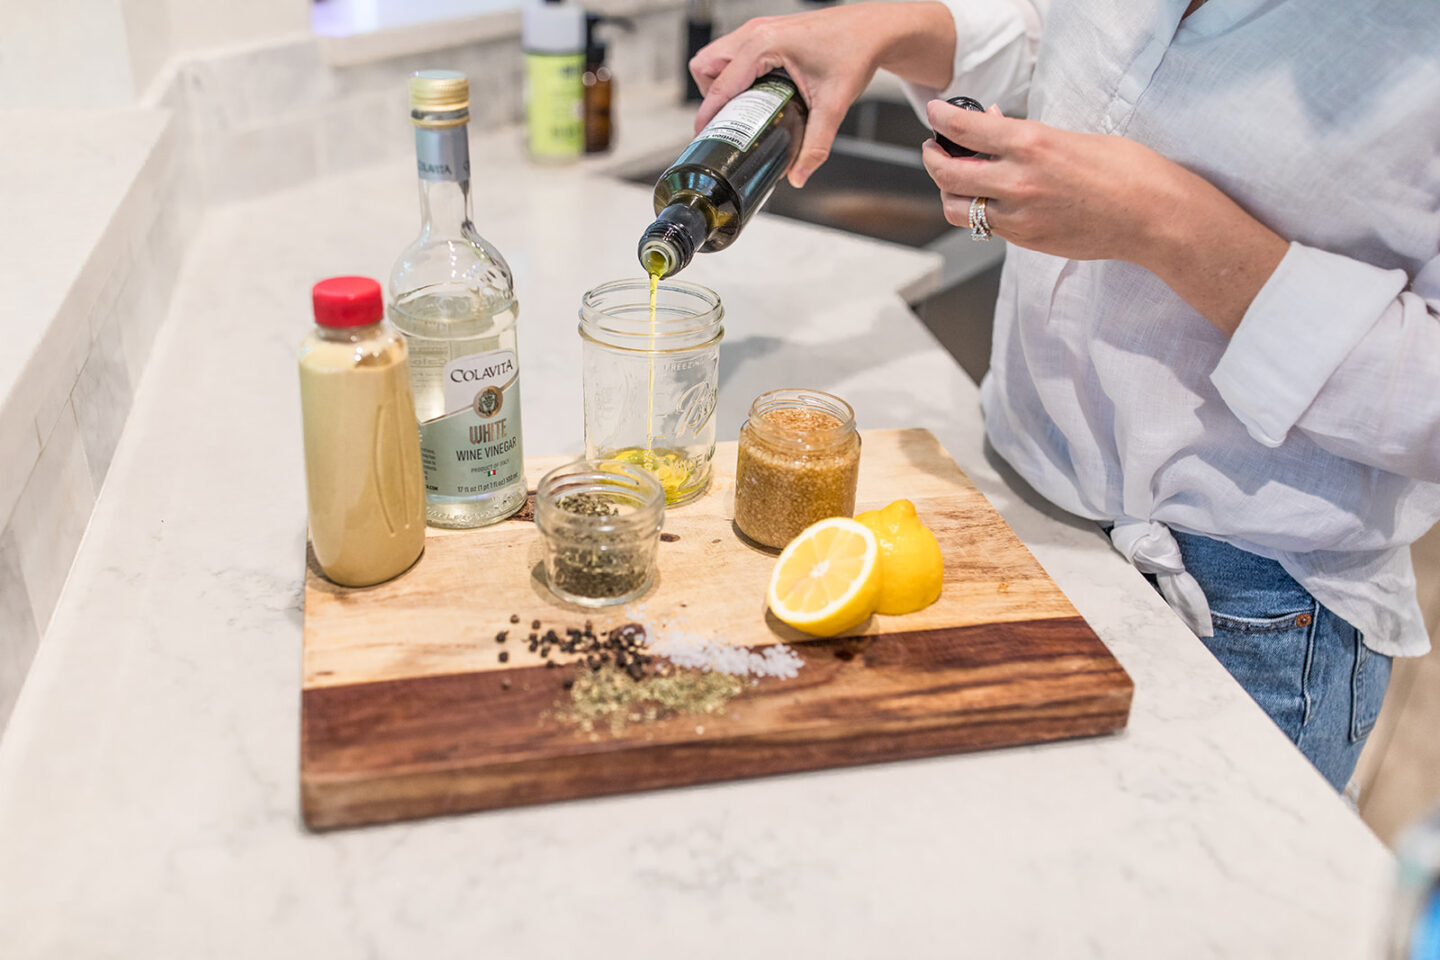 Easy Homemade Salad Dressing Recipe featured by top Atlanta lifestyle blogger, Moderately High Maintenance | Homemade Salad Dressing by popular Atlanta lifestyle blog, Moderately High Maintenance: image of a woman pouring olive oil into a mason jar.